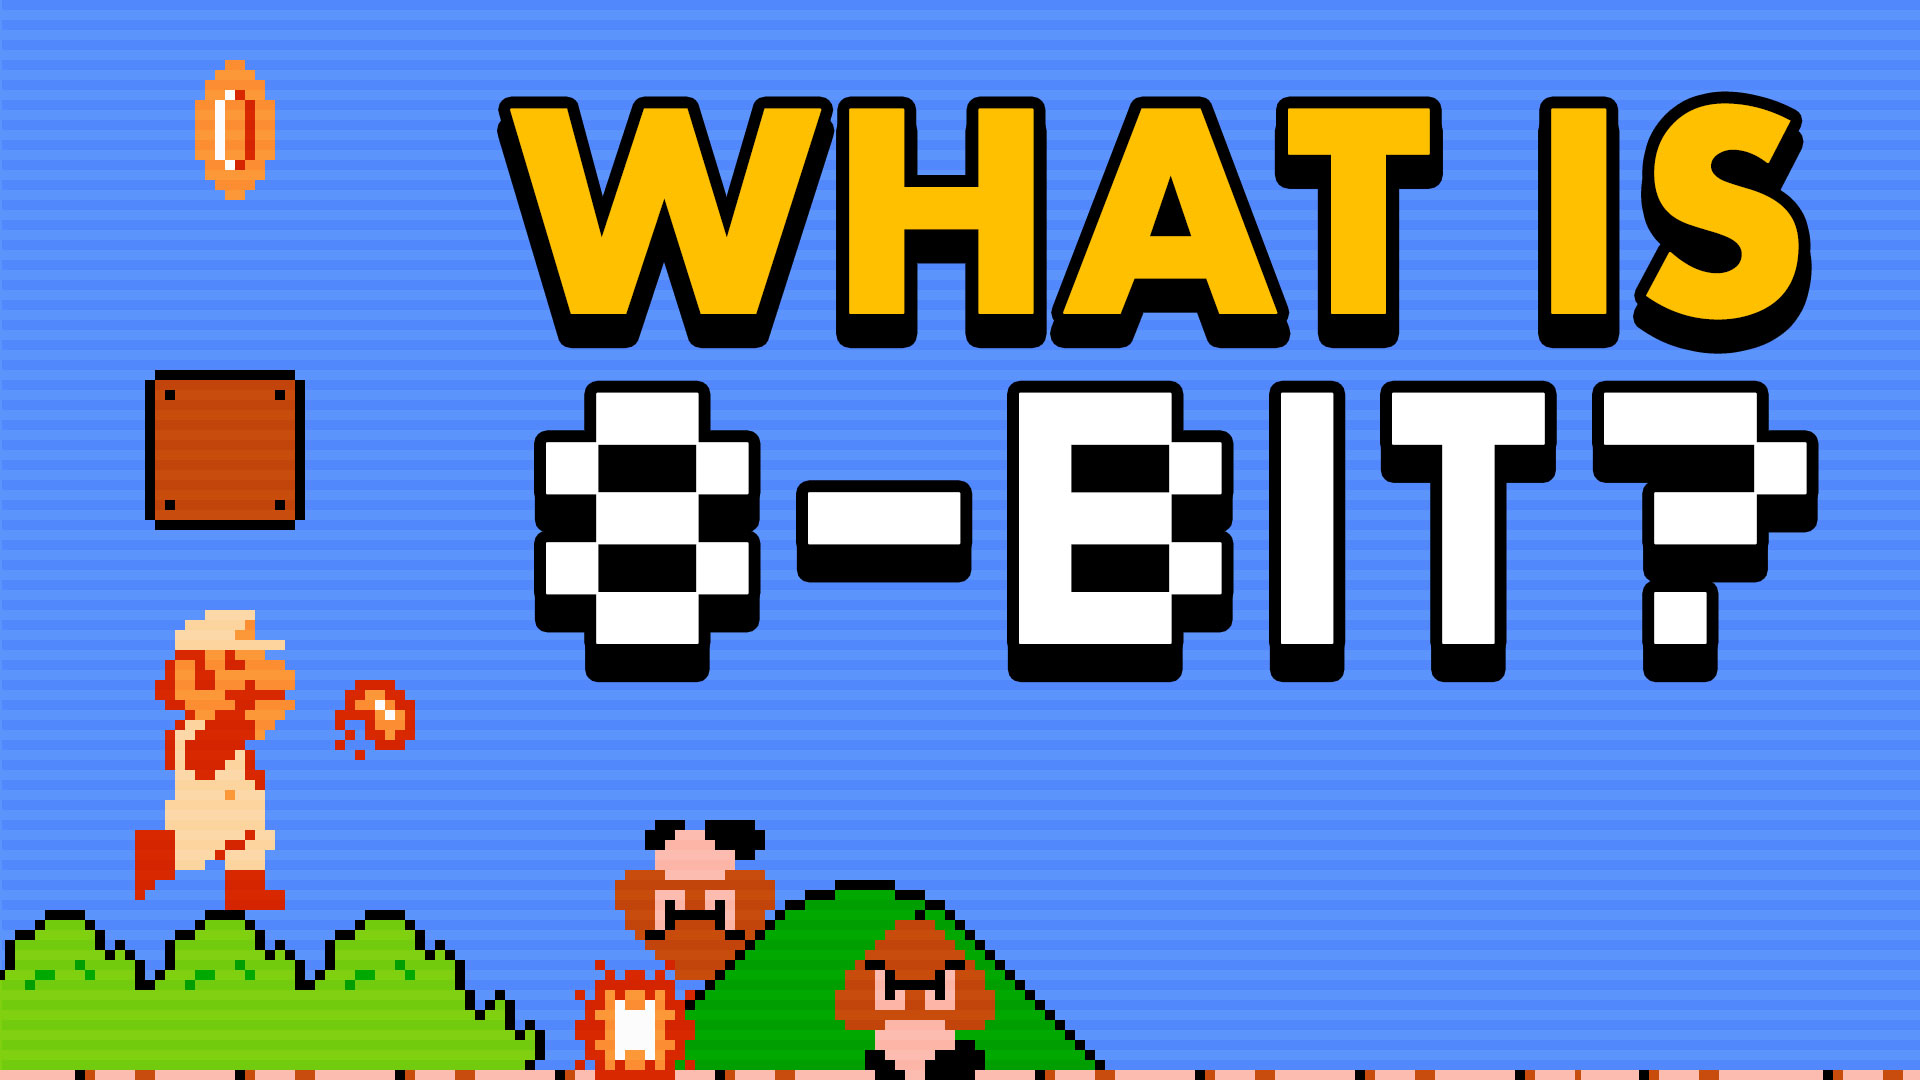 What are '8-bit' graphics anyway?